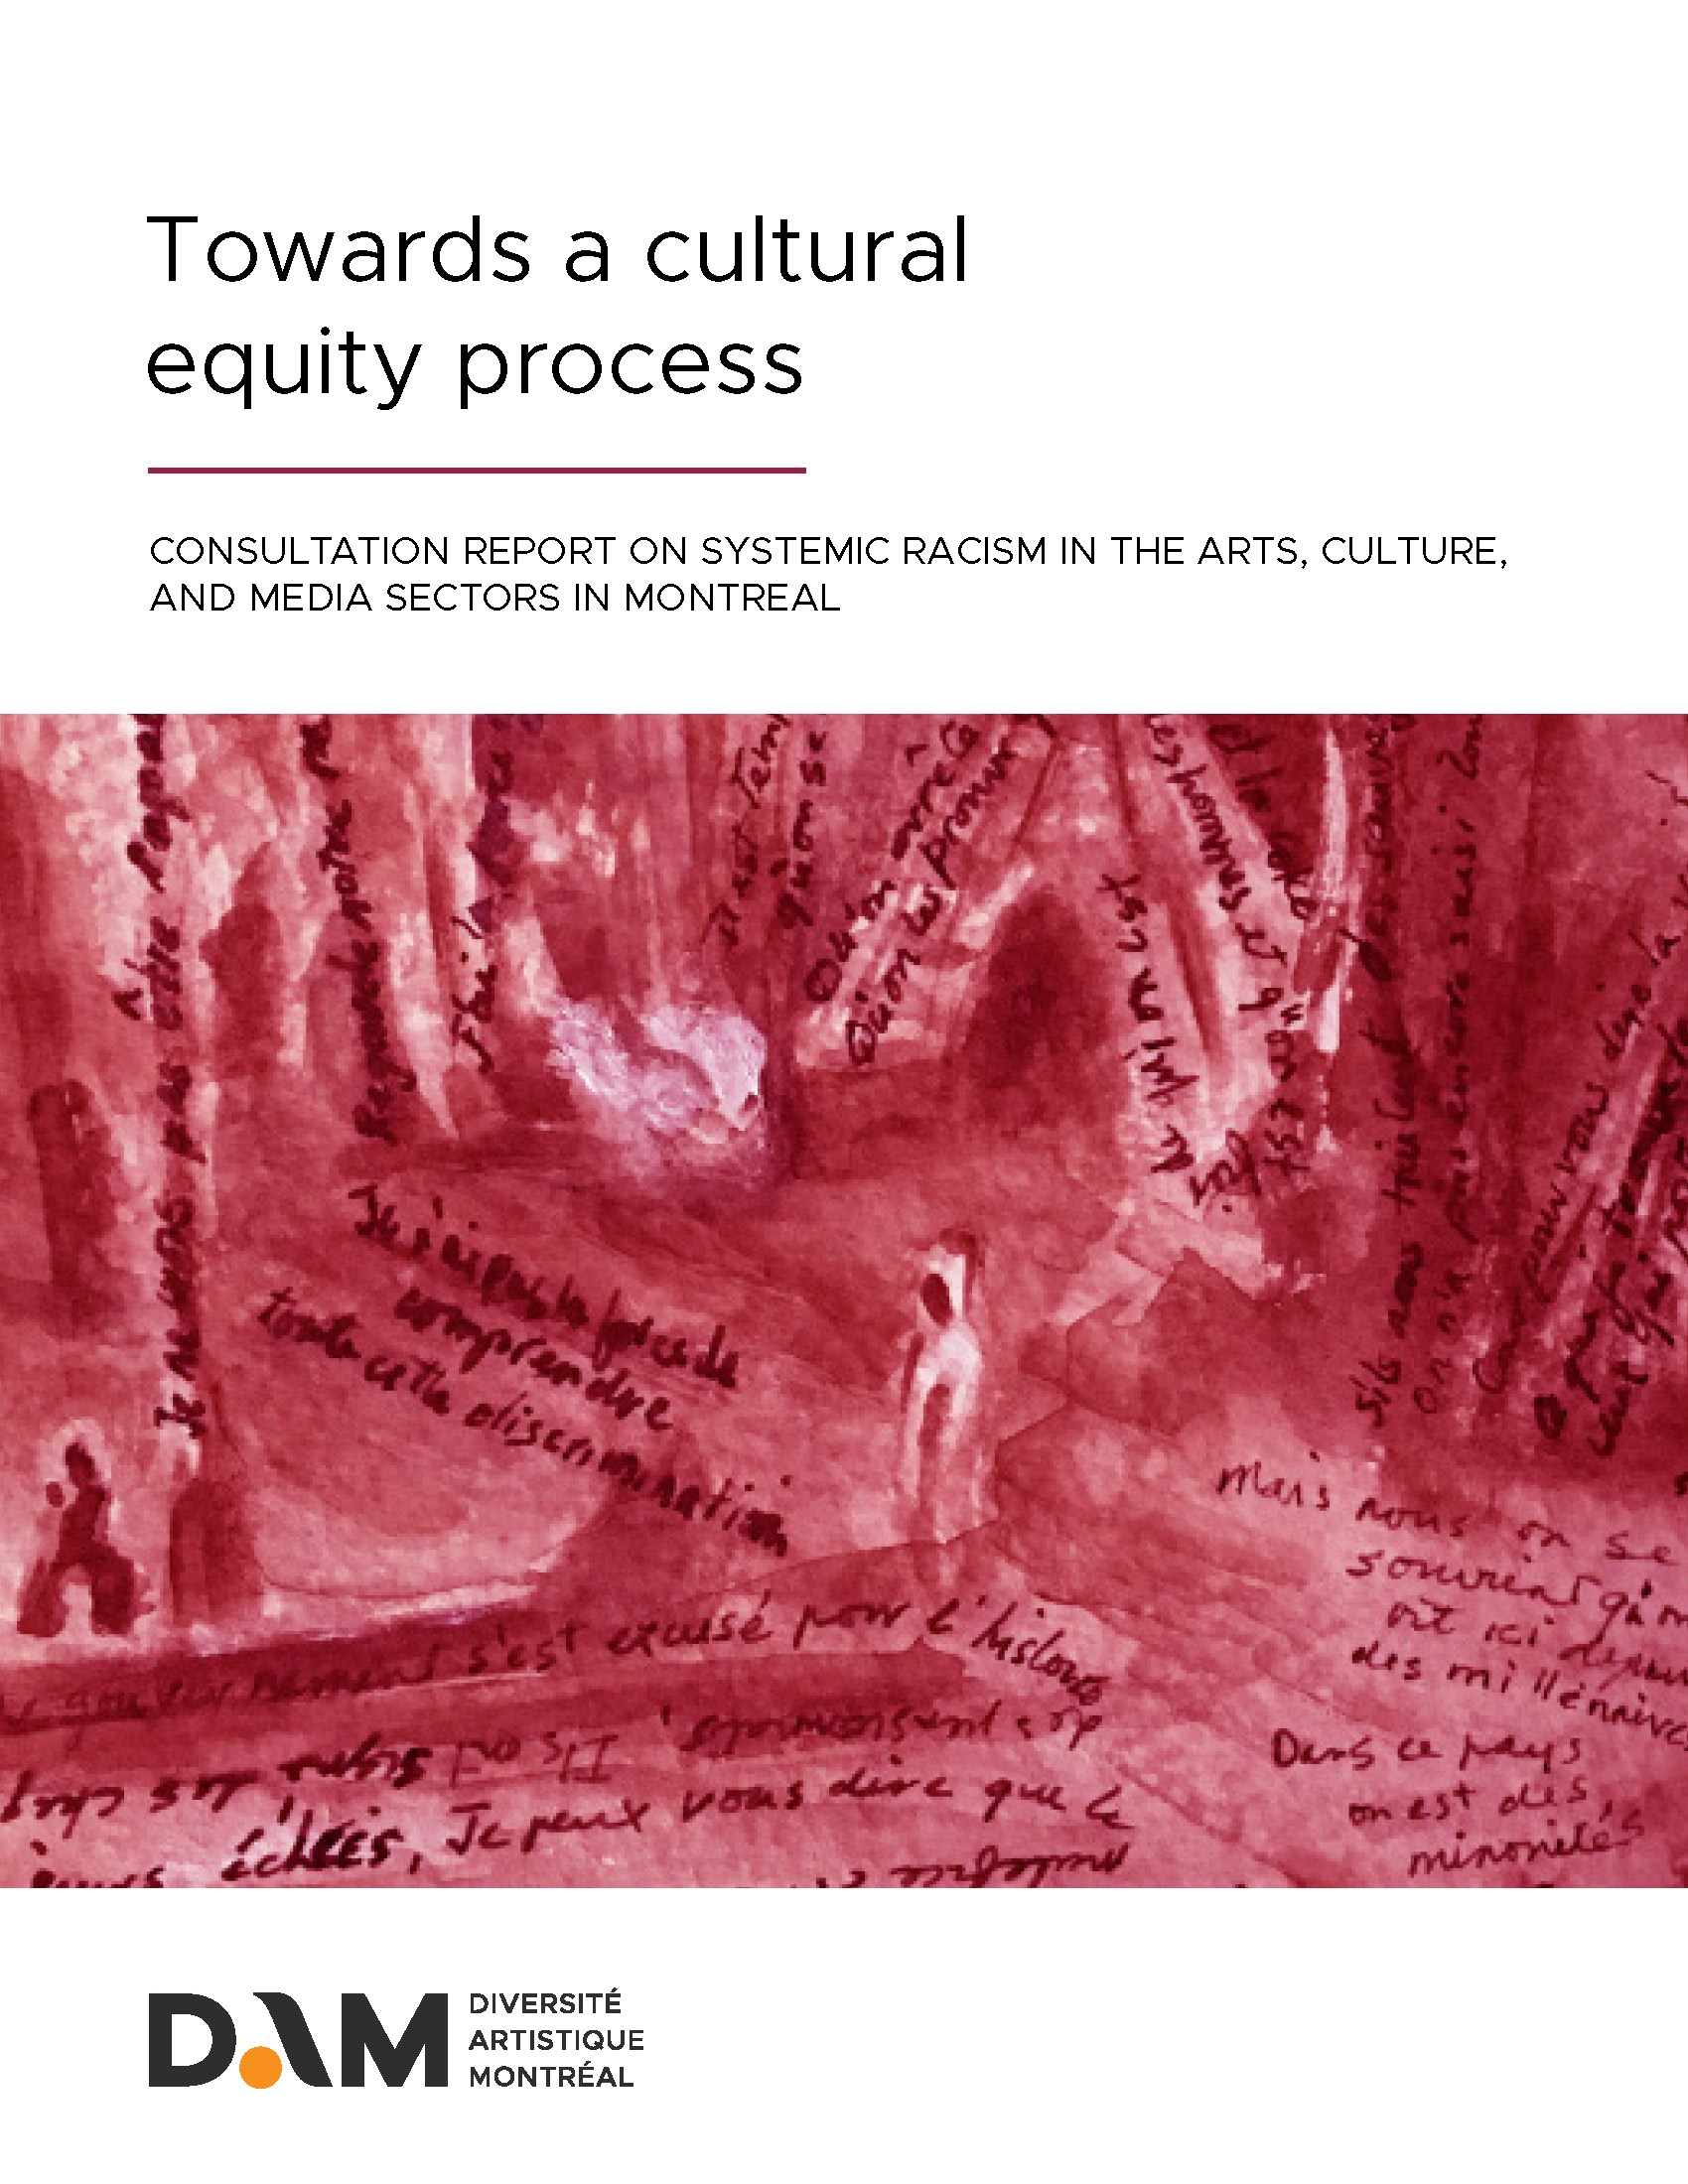 towards a cultural equity process systemic racism dam diversite artistique montreal 2018